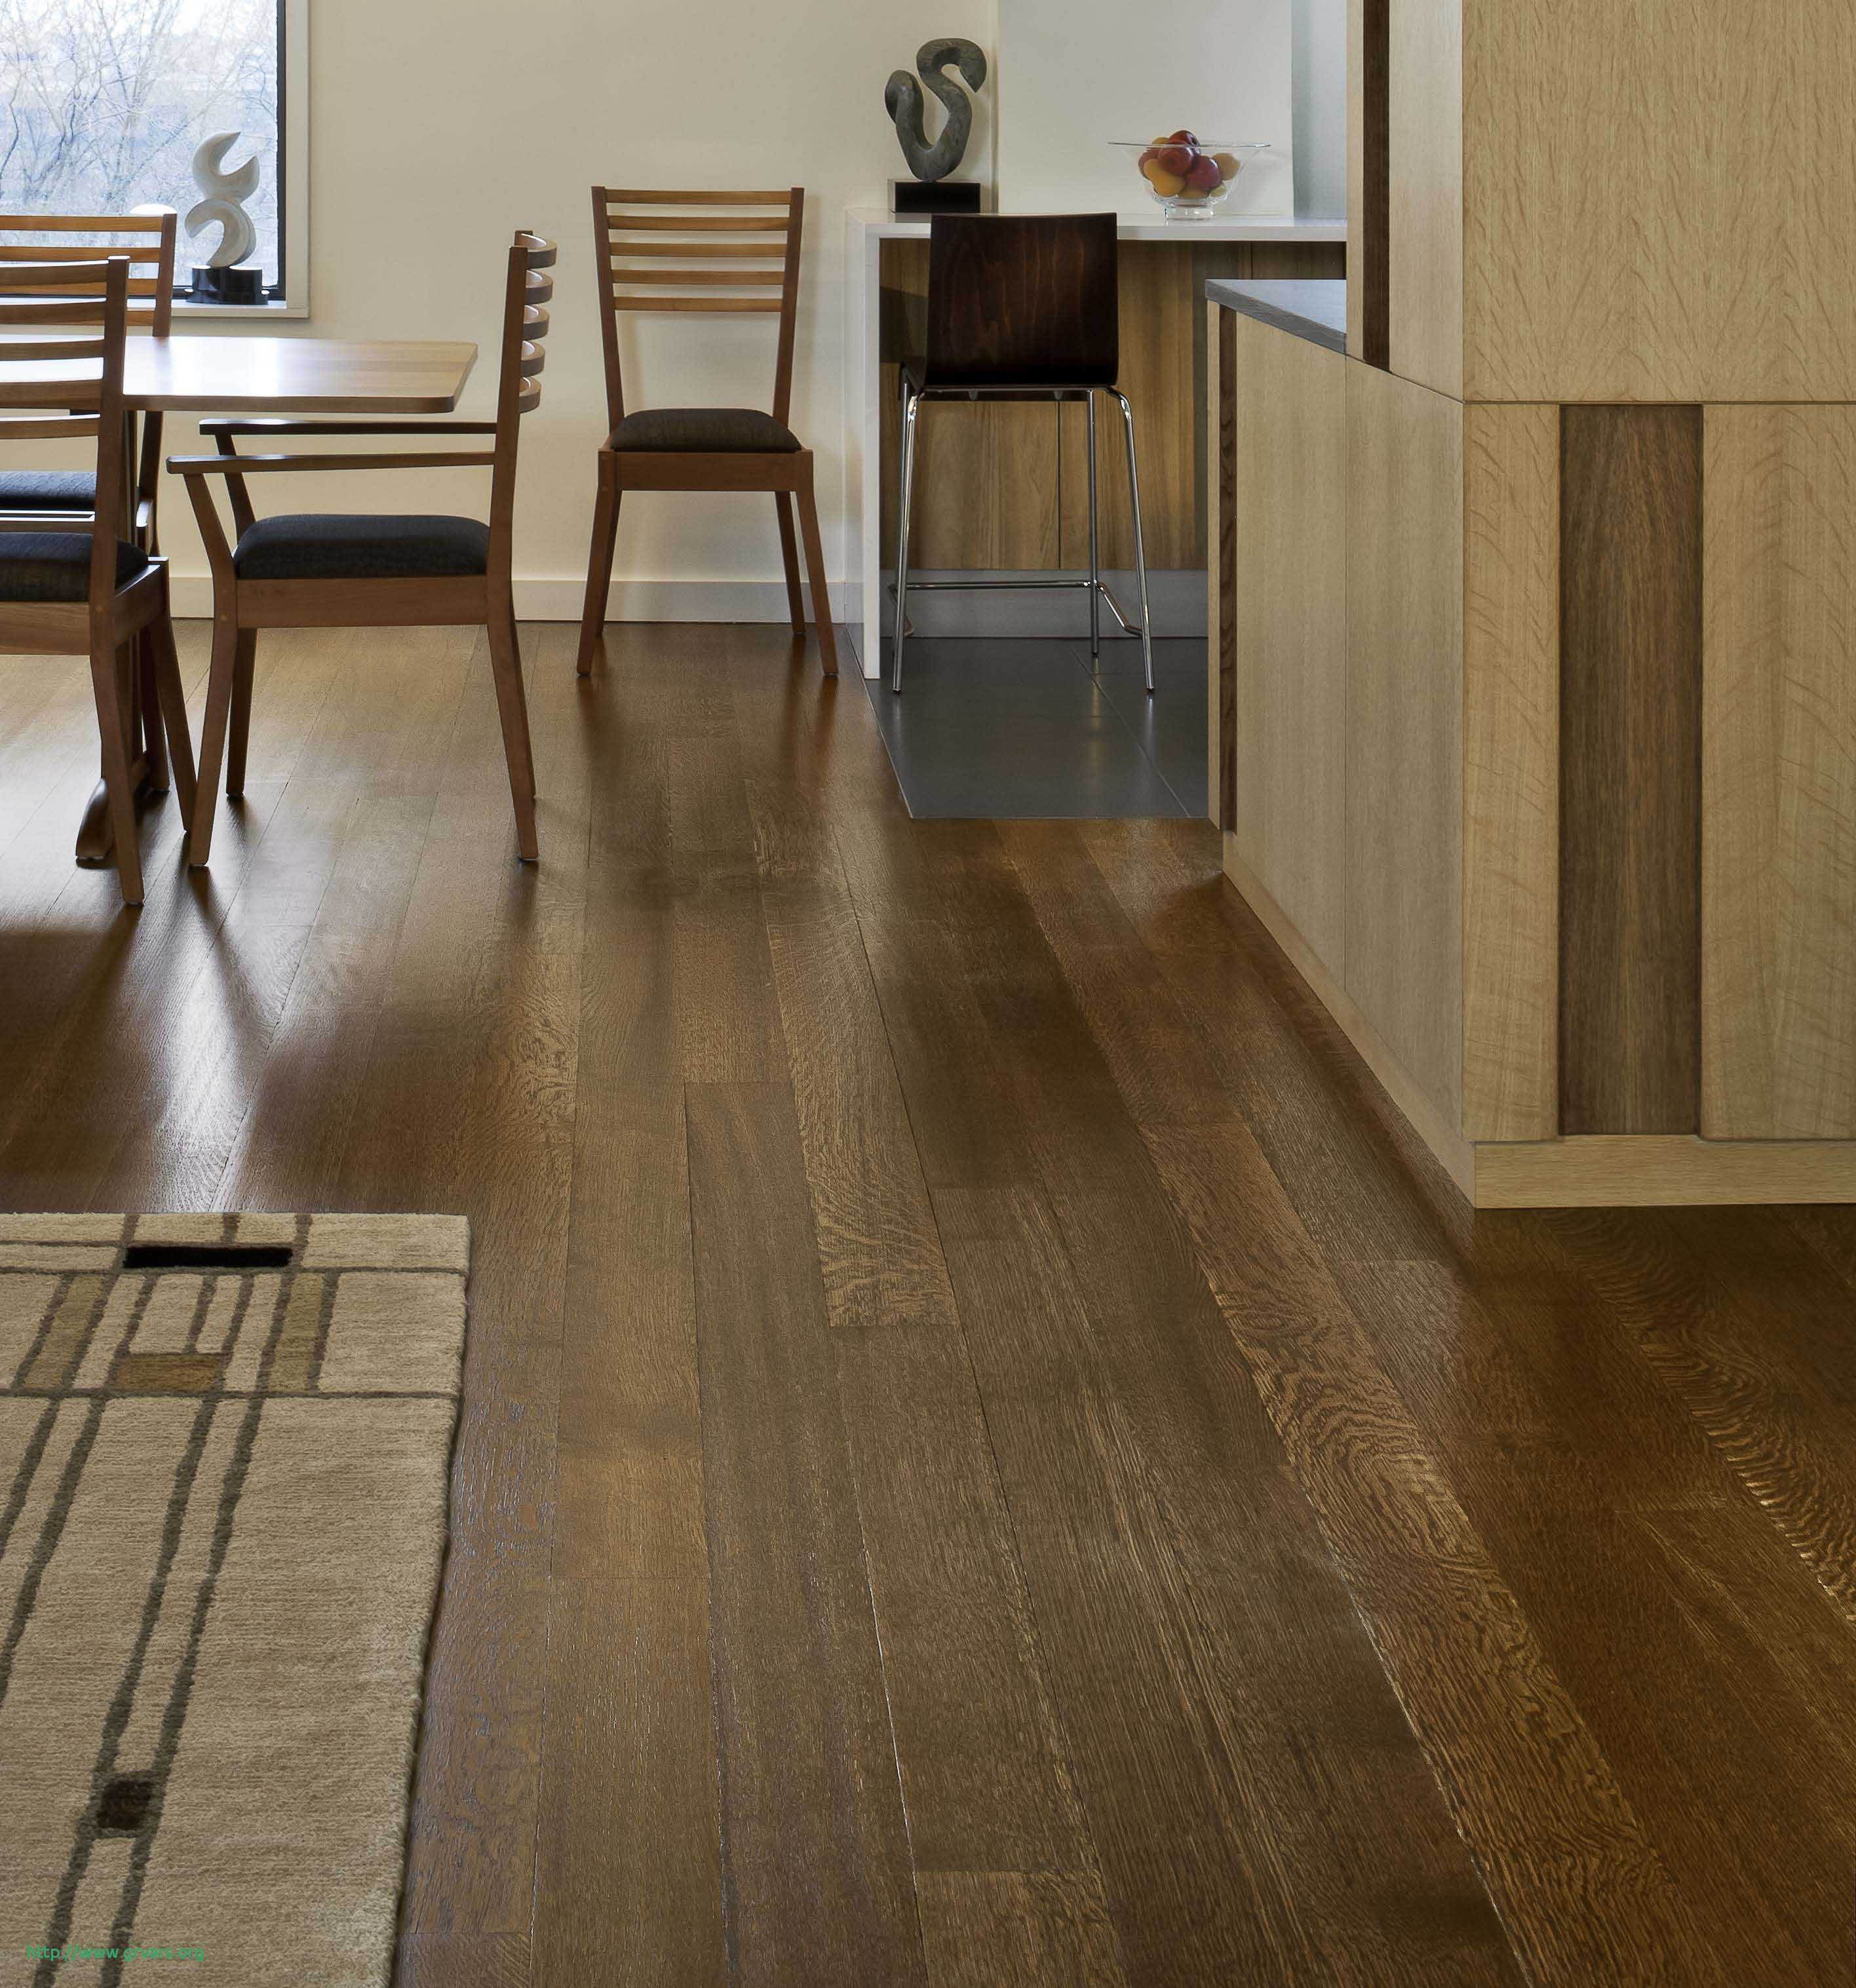 hardwood floor finishing near me of country white floor stain inspirant engaging discount hardwood inside country white floor stain inspirant engaging discount hardwood flooring 5 where to buy inspirational 0d